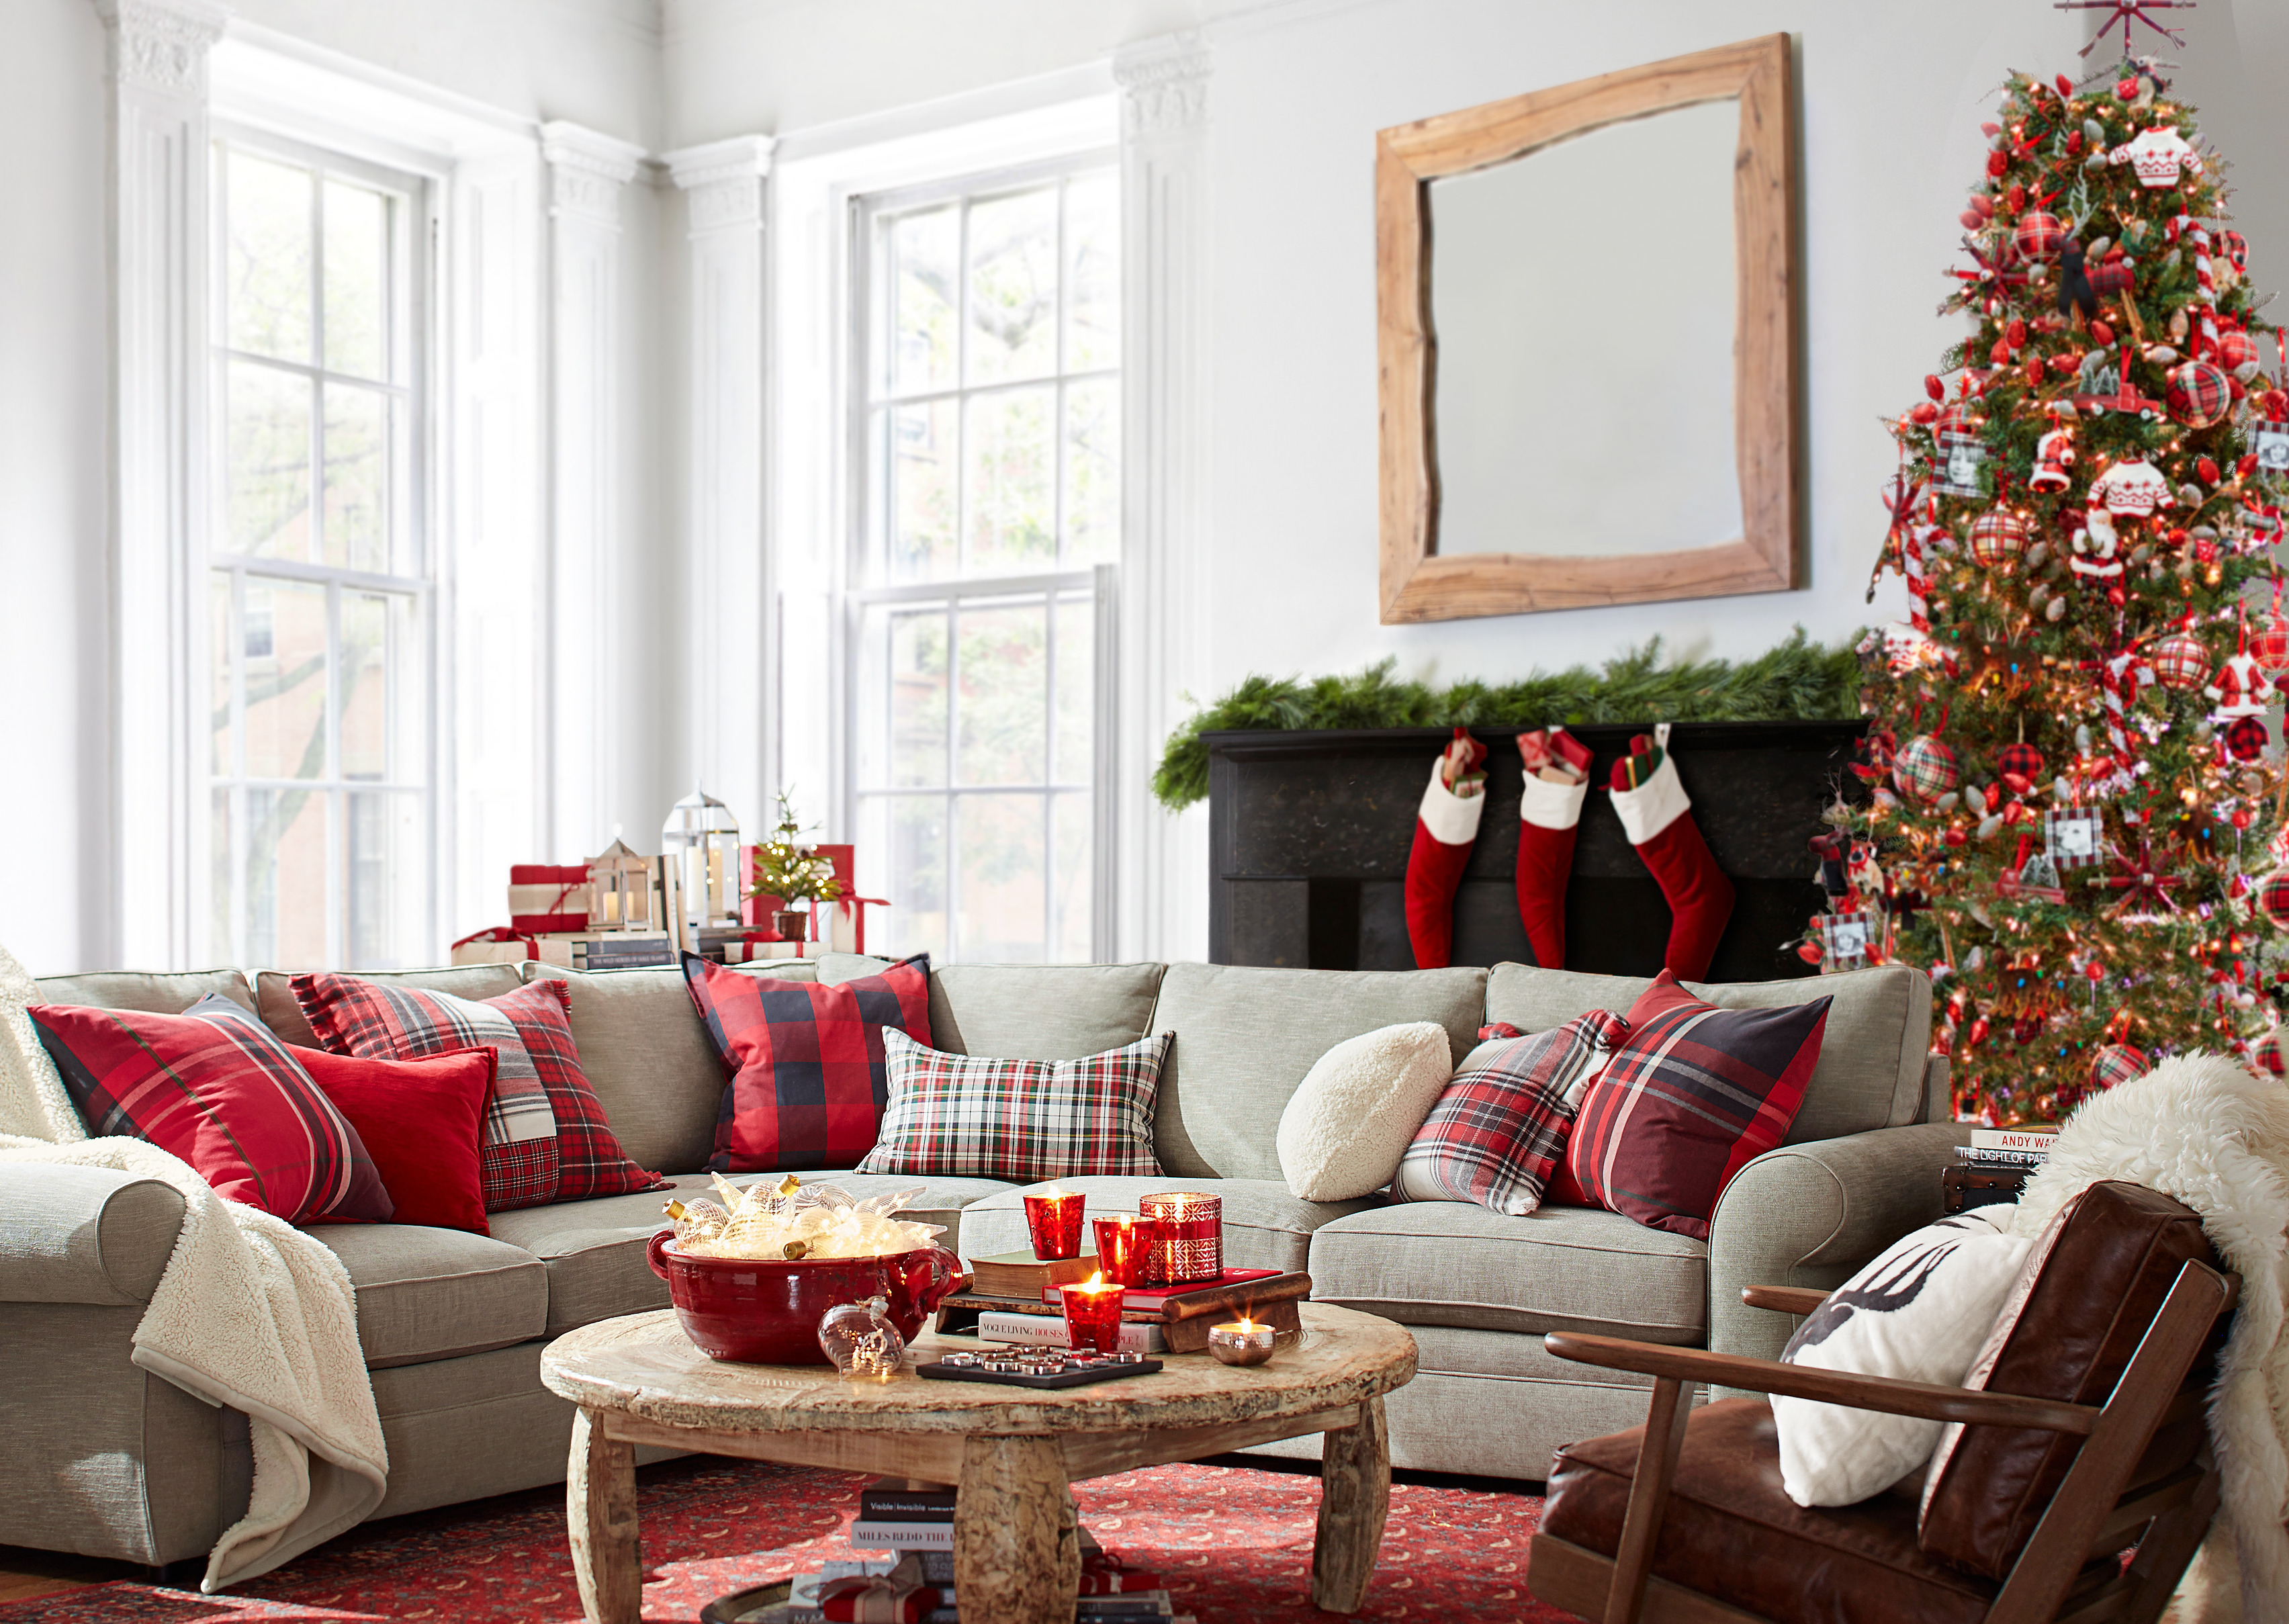 pottery barn opens in wichita kansas on october 28 business wire - Pottery Barn Christmas Decorations Home